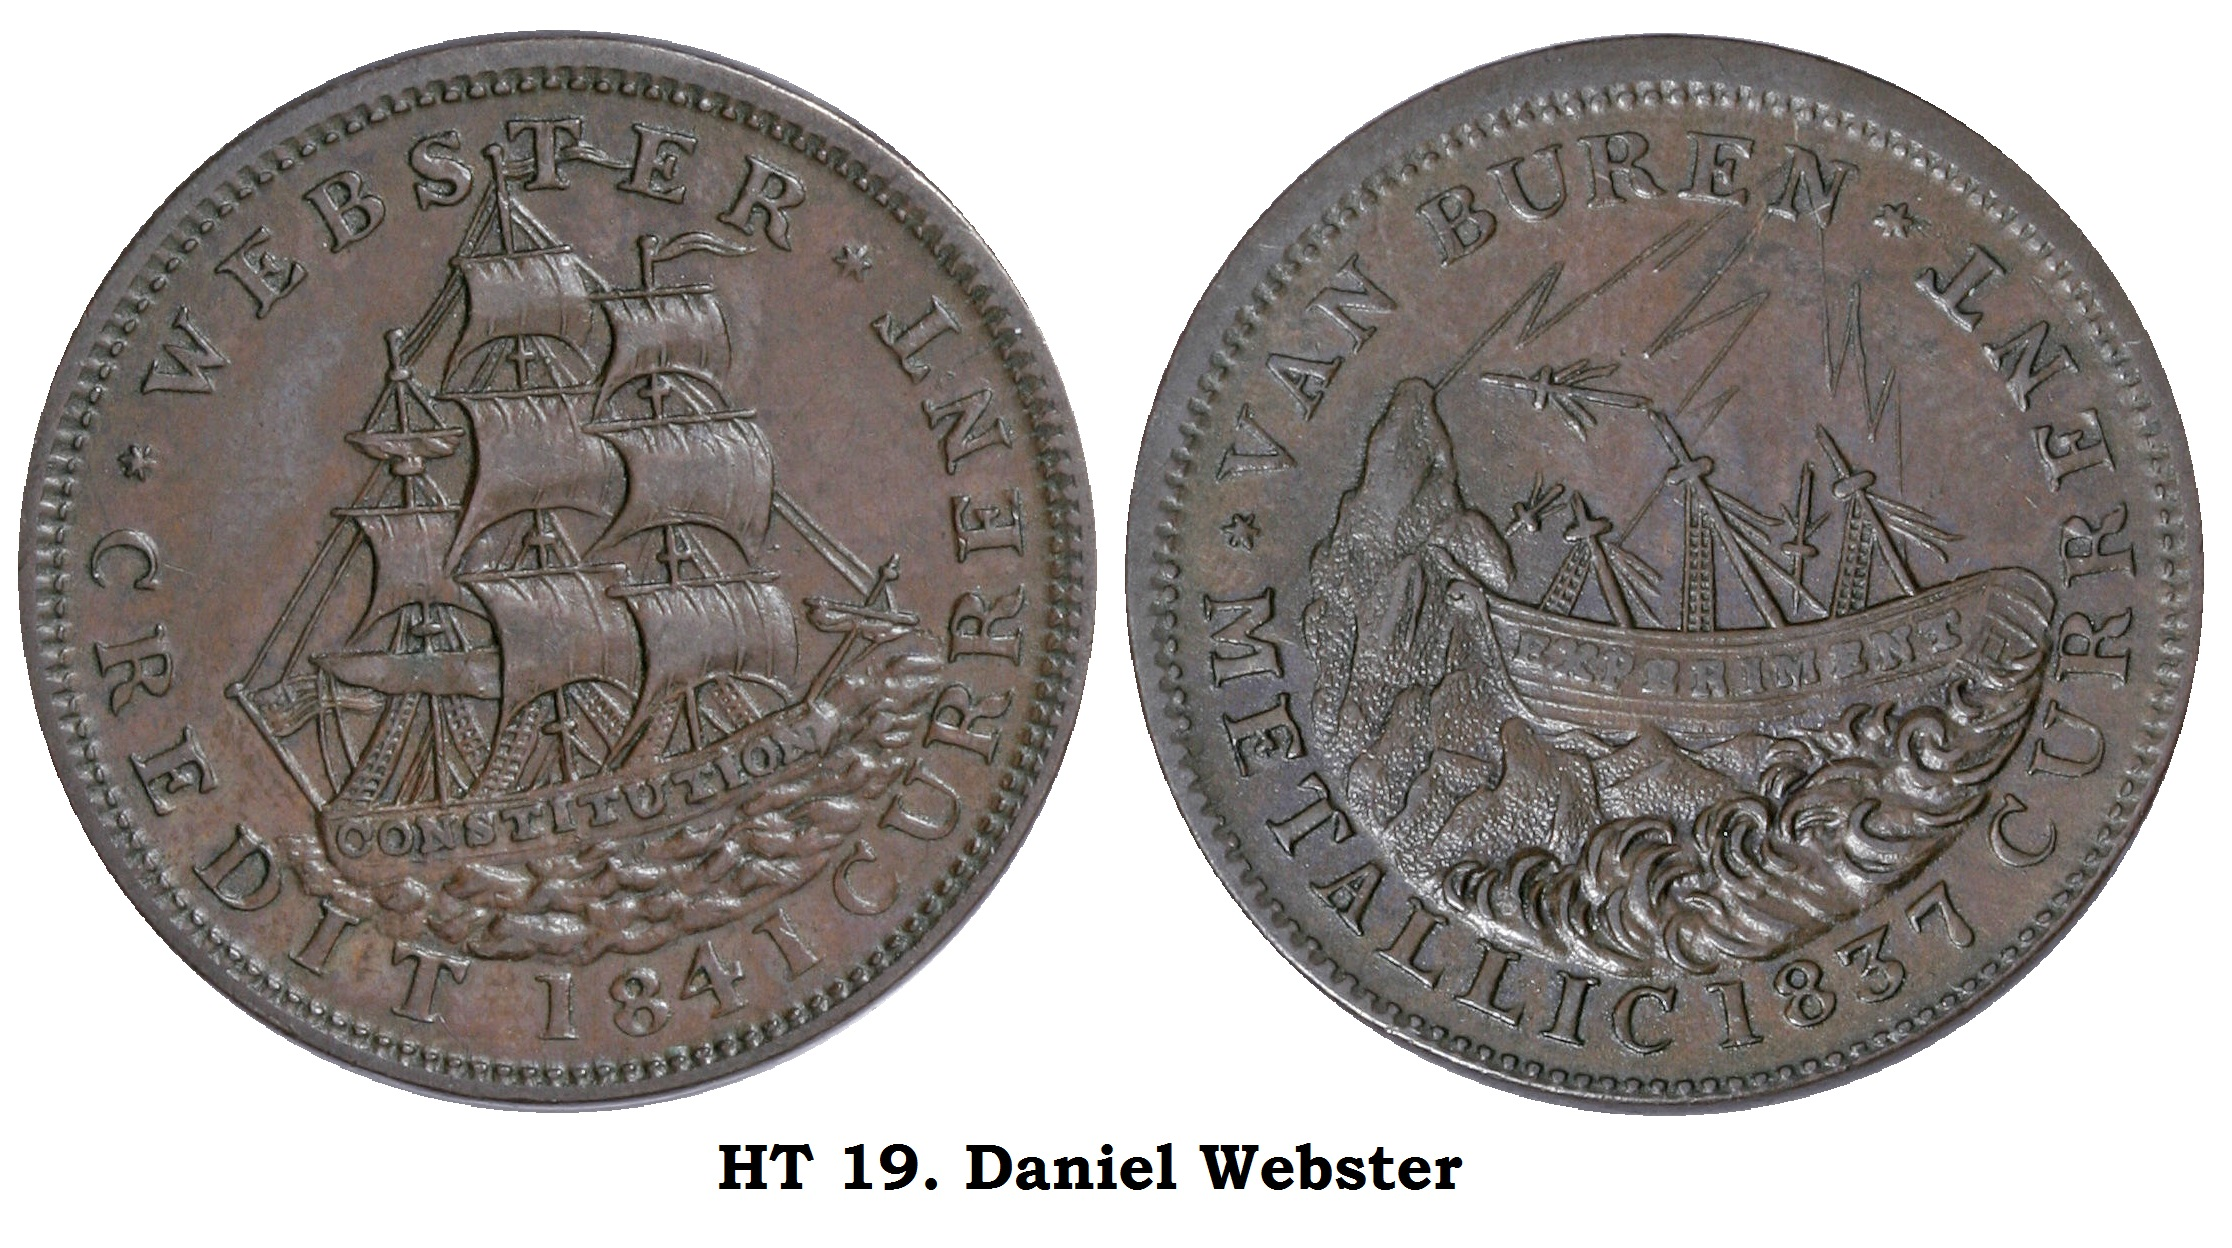 HT-19. Daniel Webster